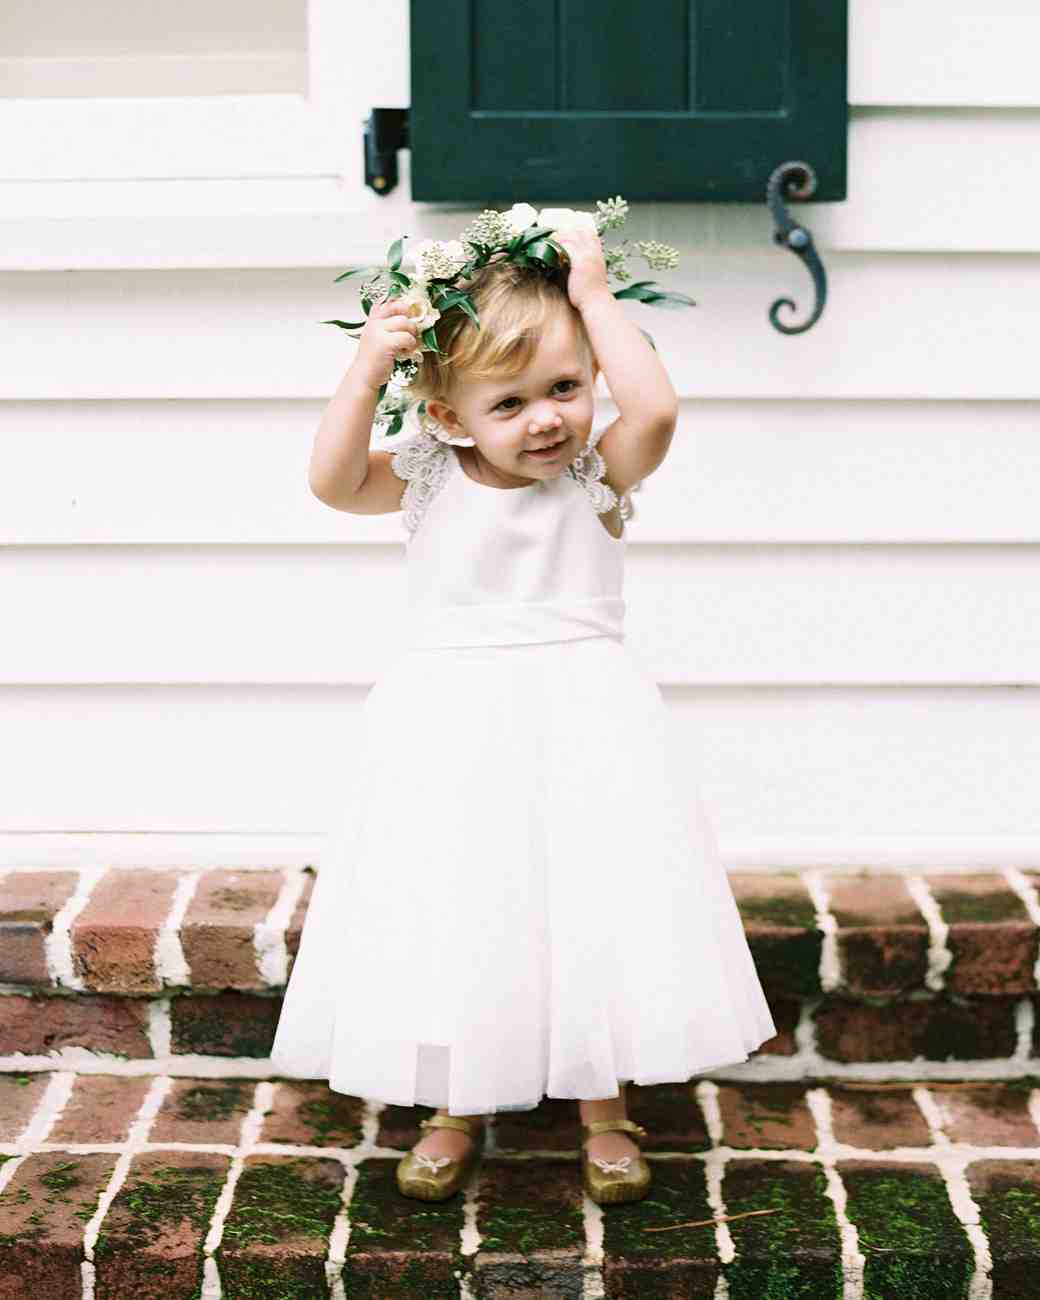 68 flower crown ideas to complete your wedding hairstyle martha flower girl with green and white flower crown izmirmasajfo